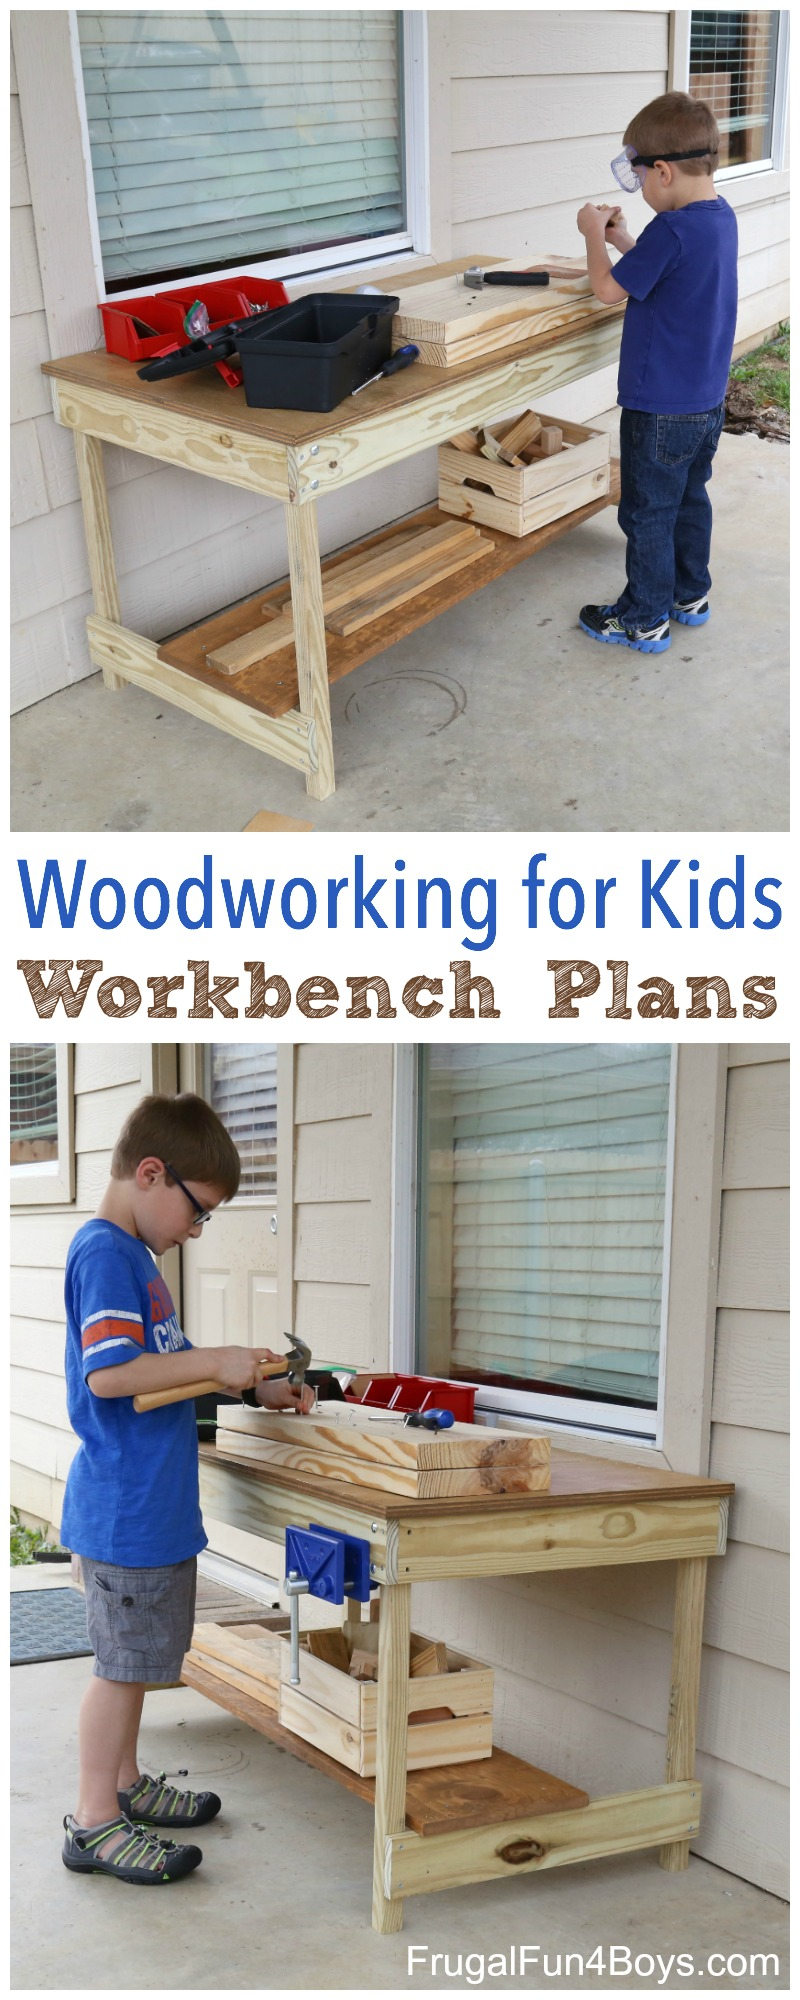 Woodworking for Kids - Download Kids' Workbench Plans